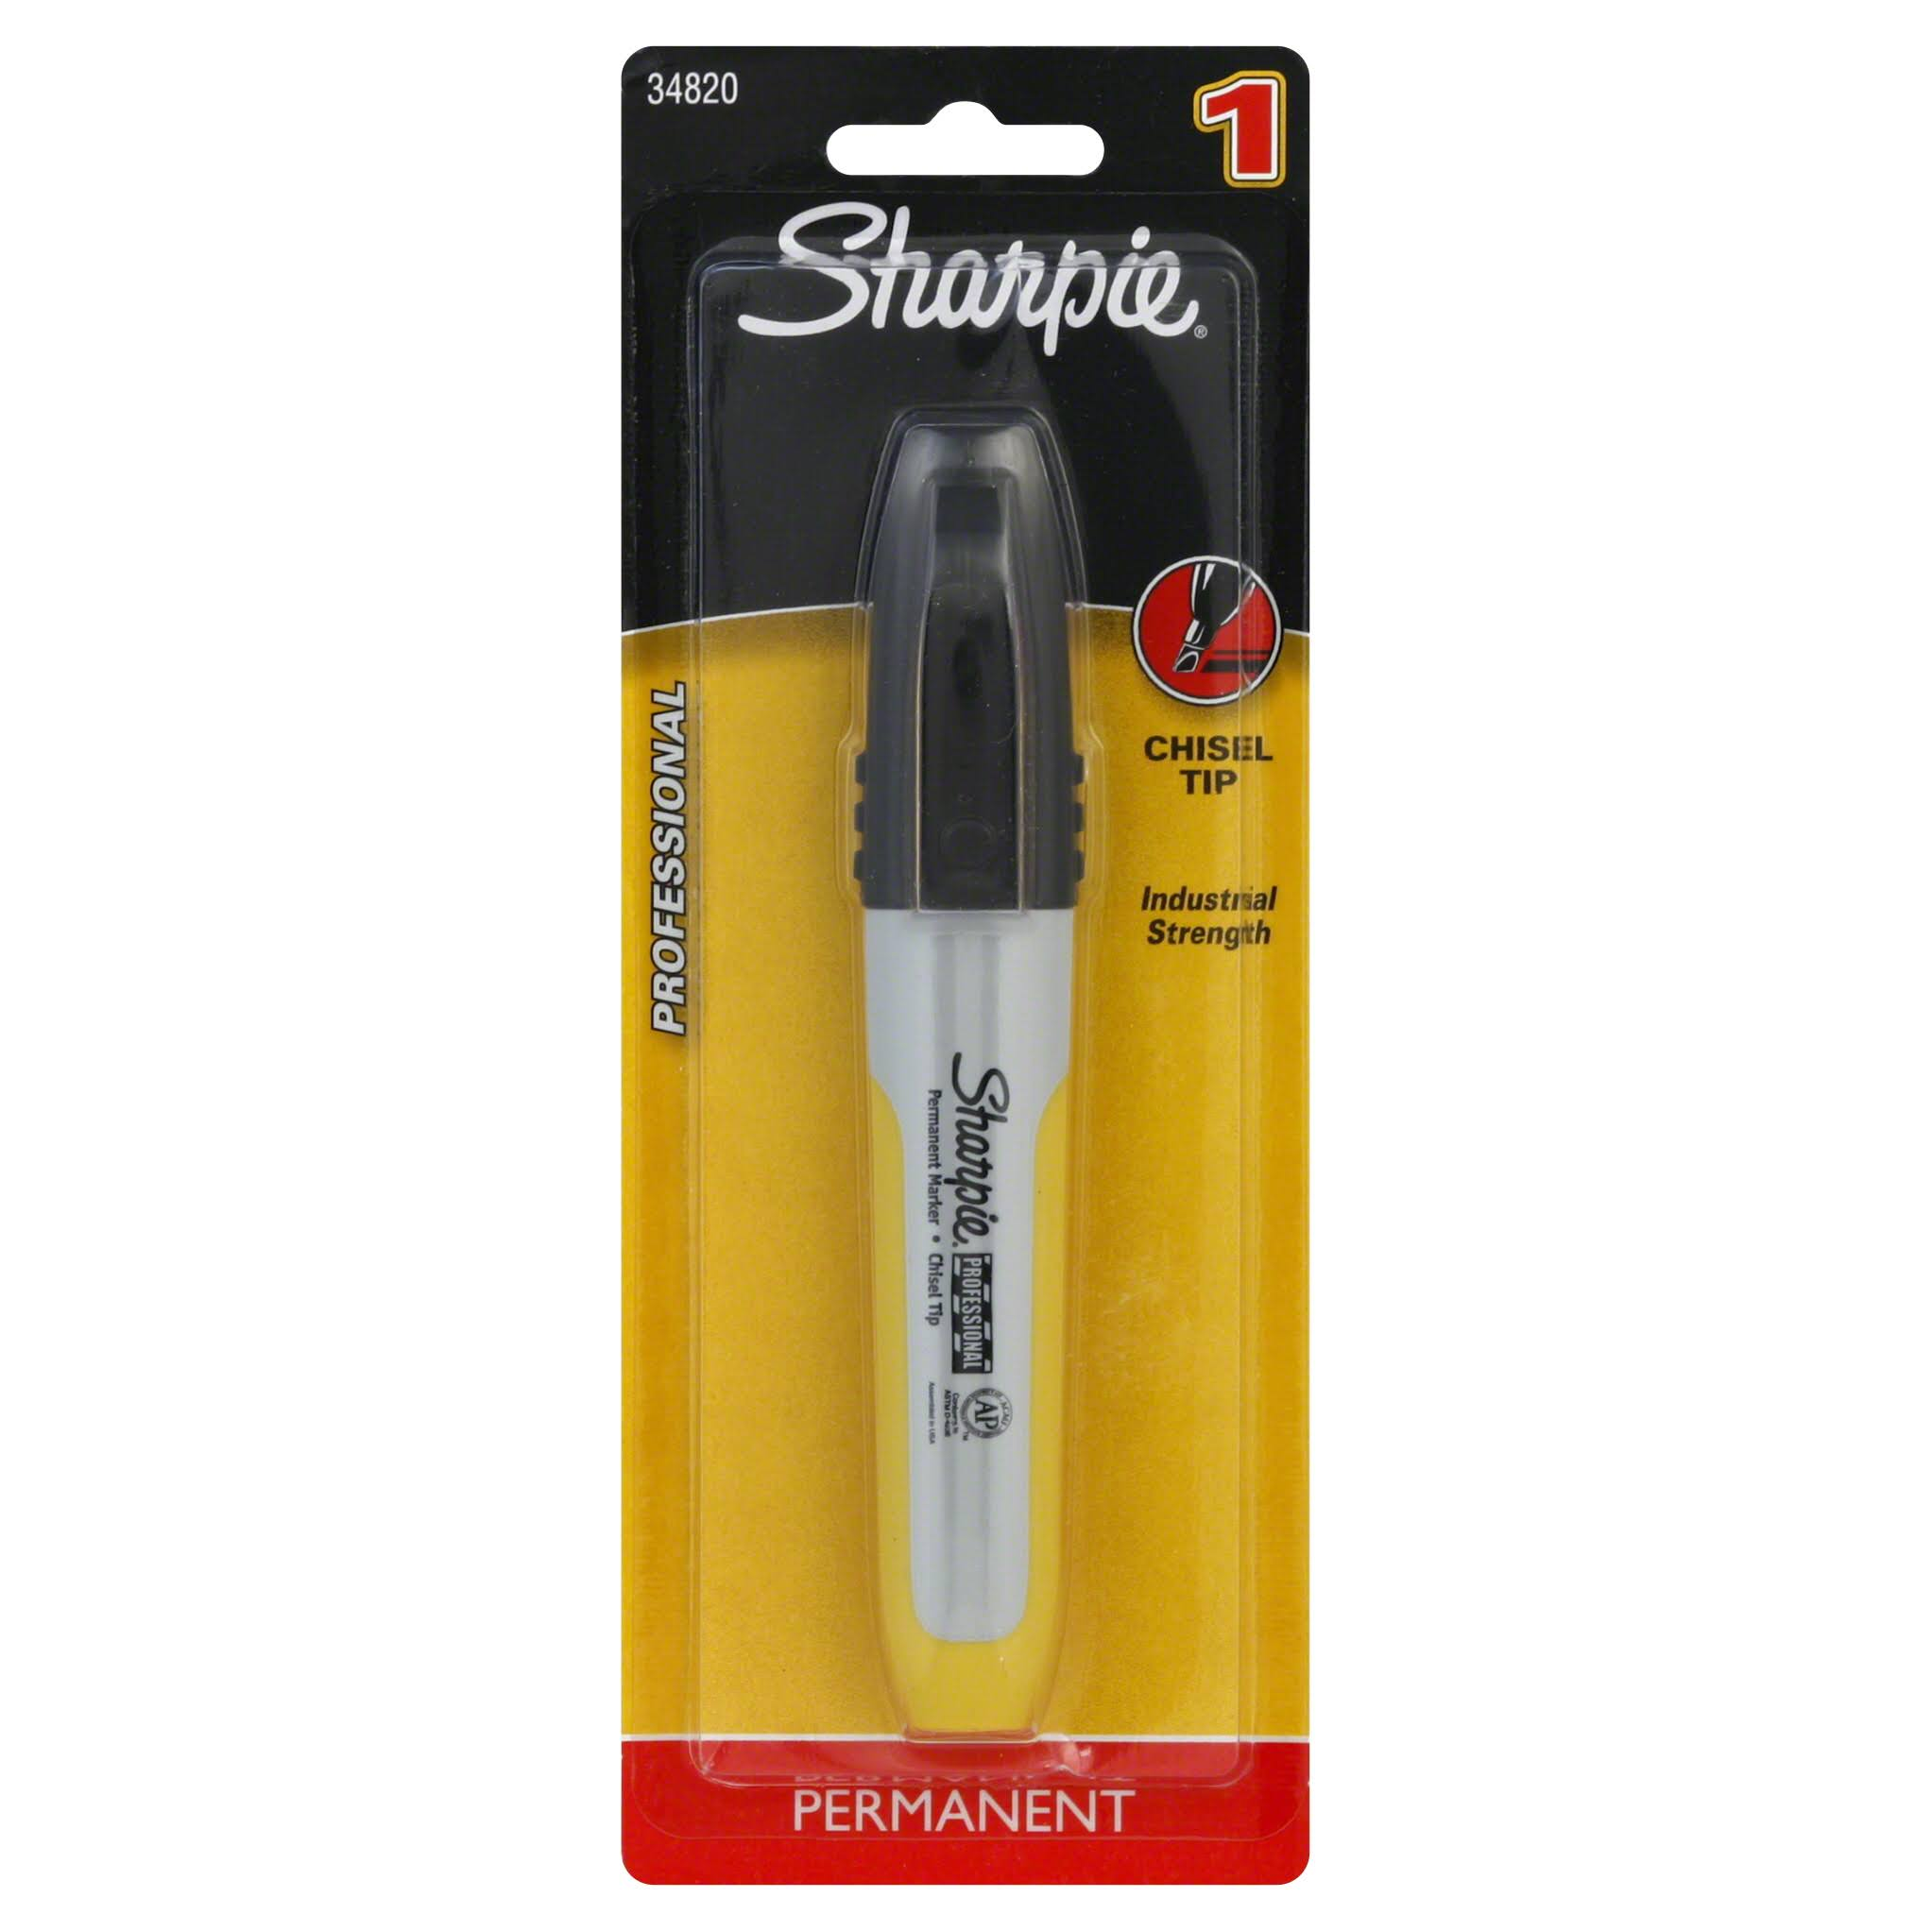 Sharpie Professional Permanent Marker, Chisel Tip